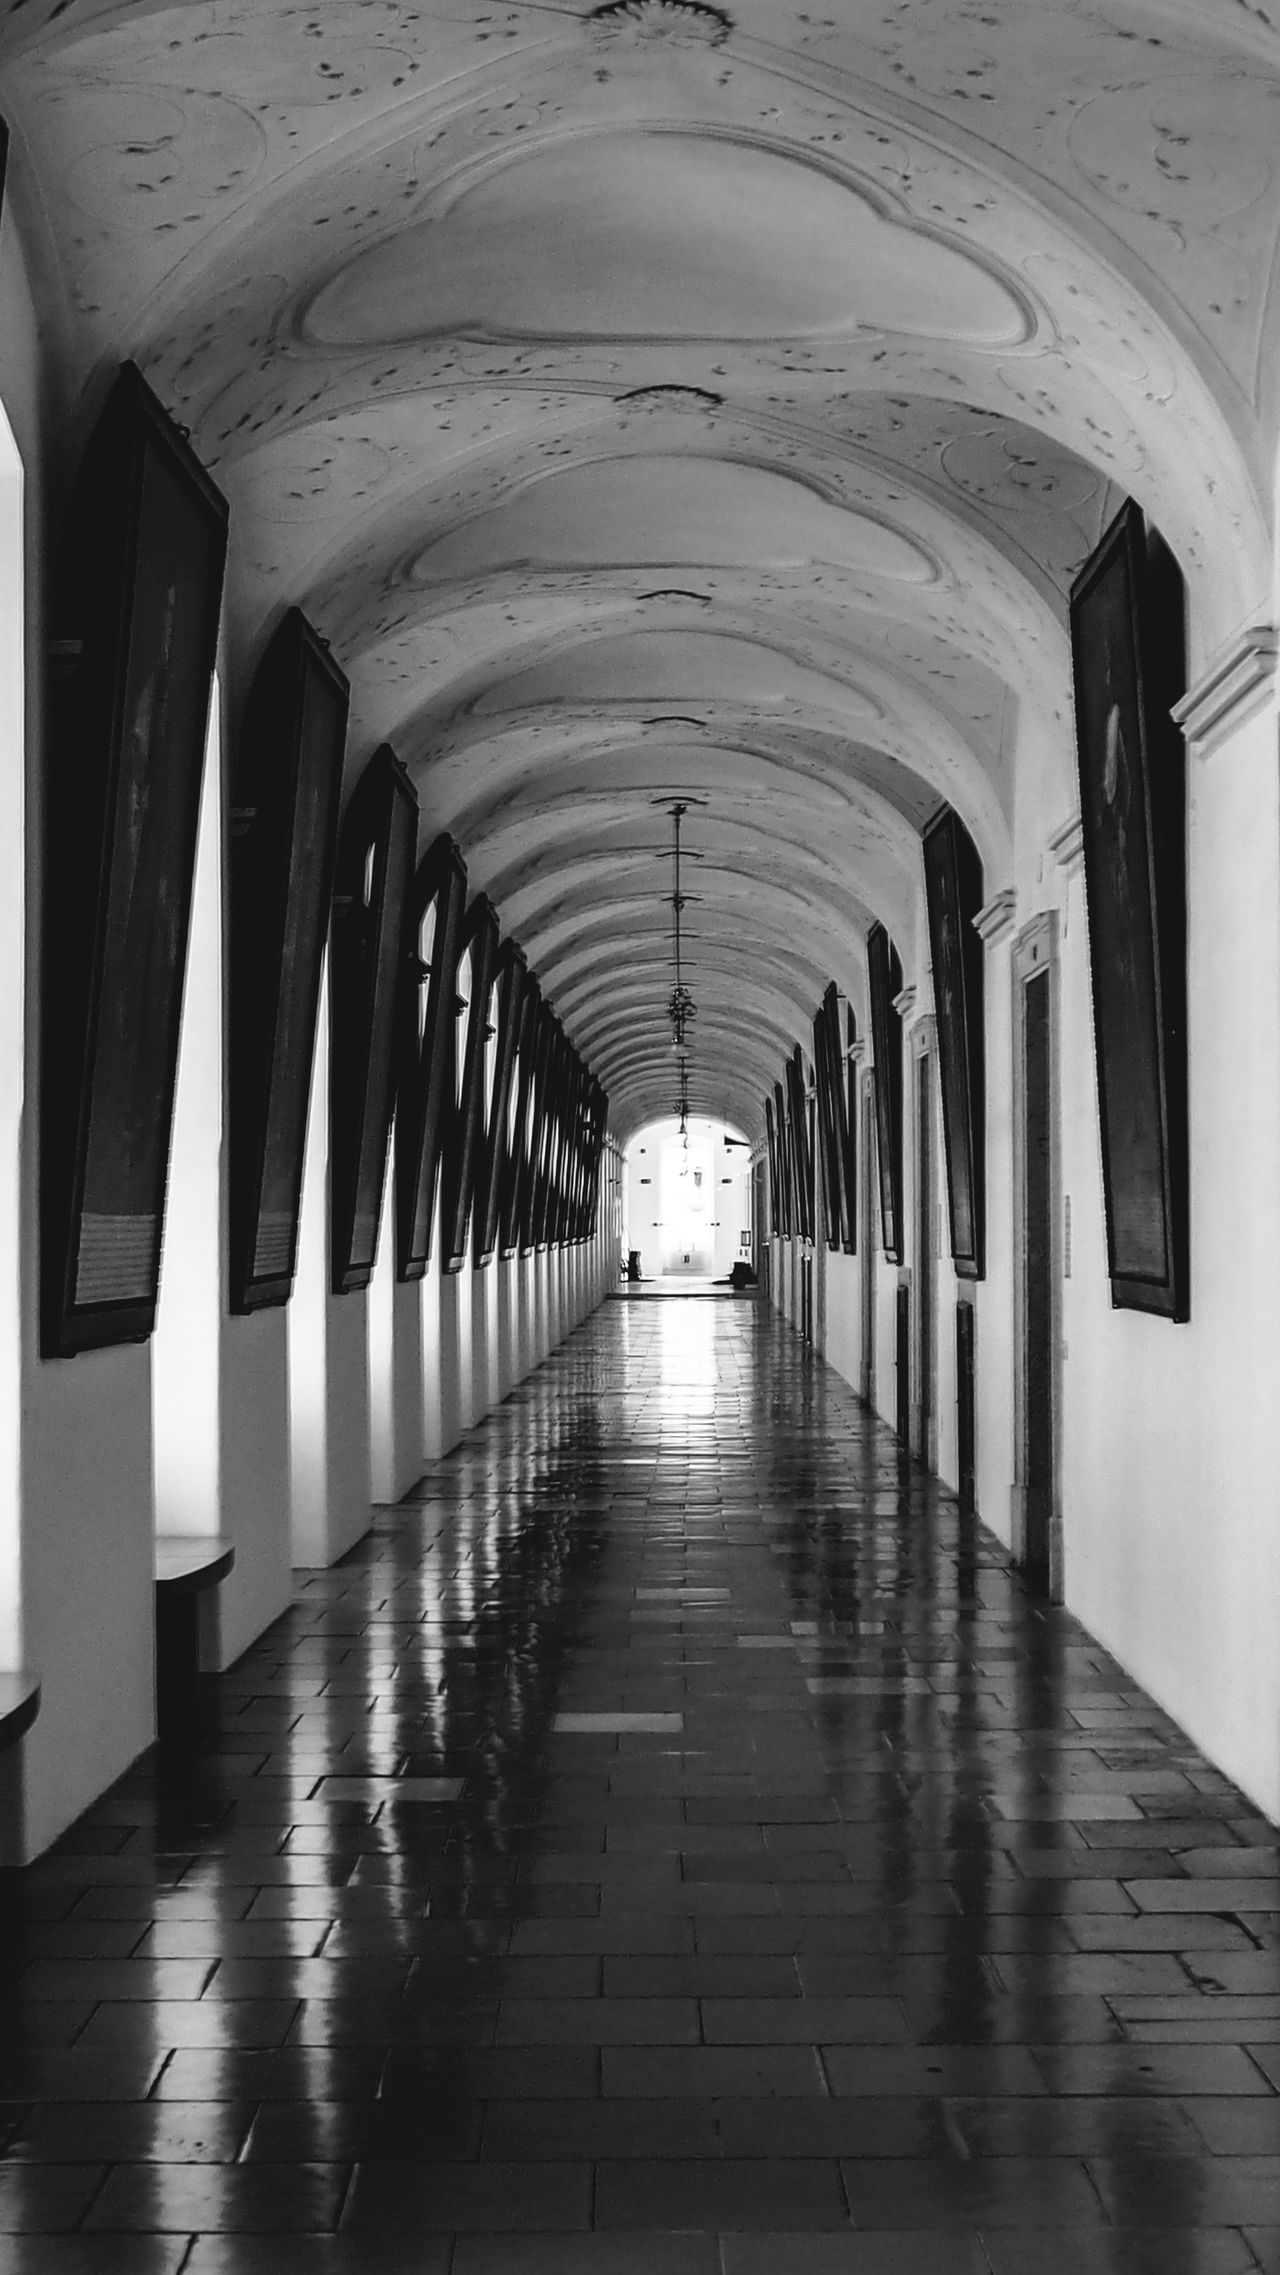 Arcade Arch Arched Architectural Column Architecture Archway Black & White Black And White Bradley Olson Bradleywarren Photography Built Structure Ceiling Colonnade Column Corridor Day Diminishing Perspective Flooring In A Row Indoors  Long Monochrome Narrow Passage Vanishing Point